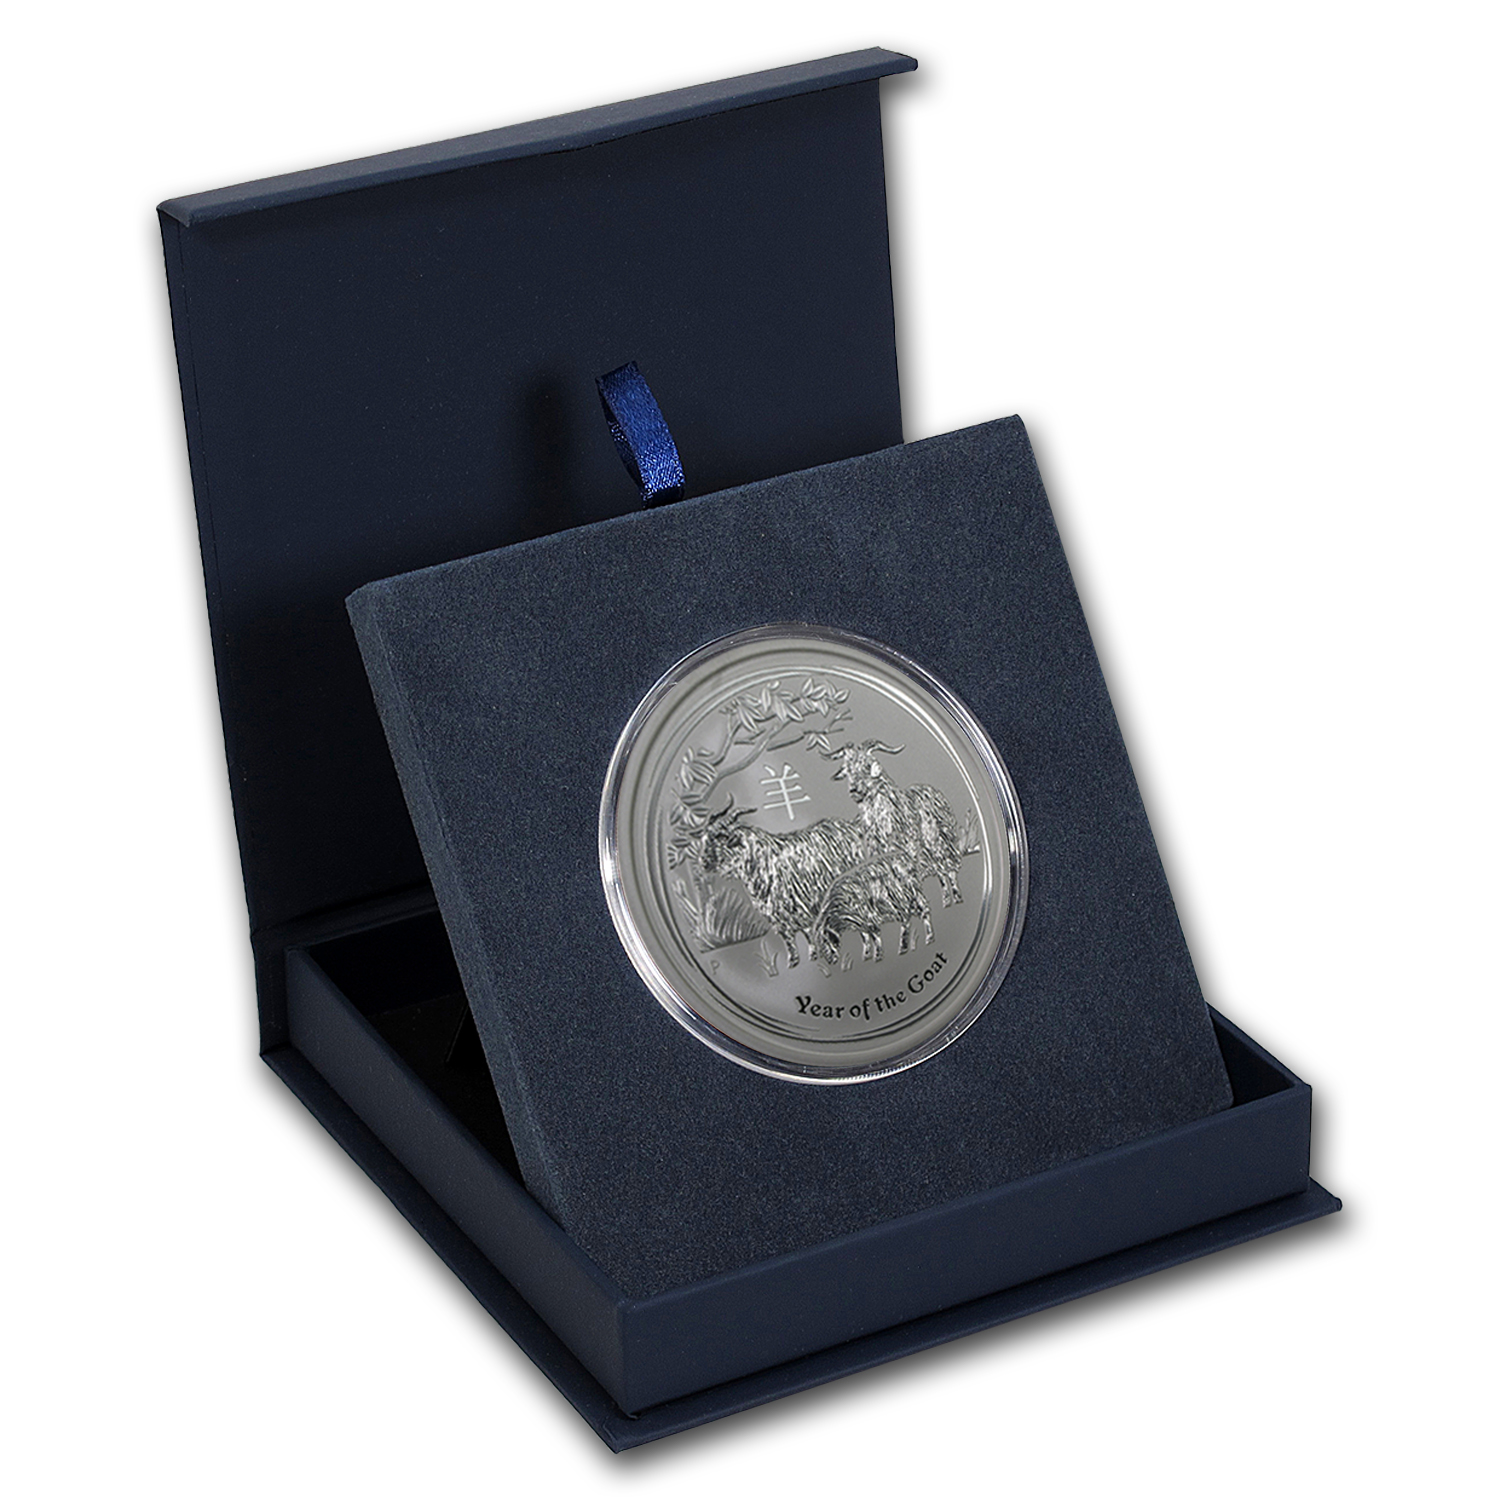 APMEX Gift Box - 5 oz Perth Mint Silver Coin Lunar Series 2